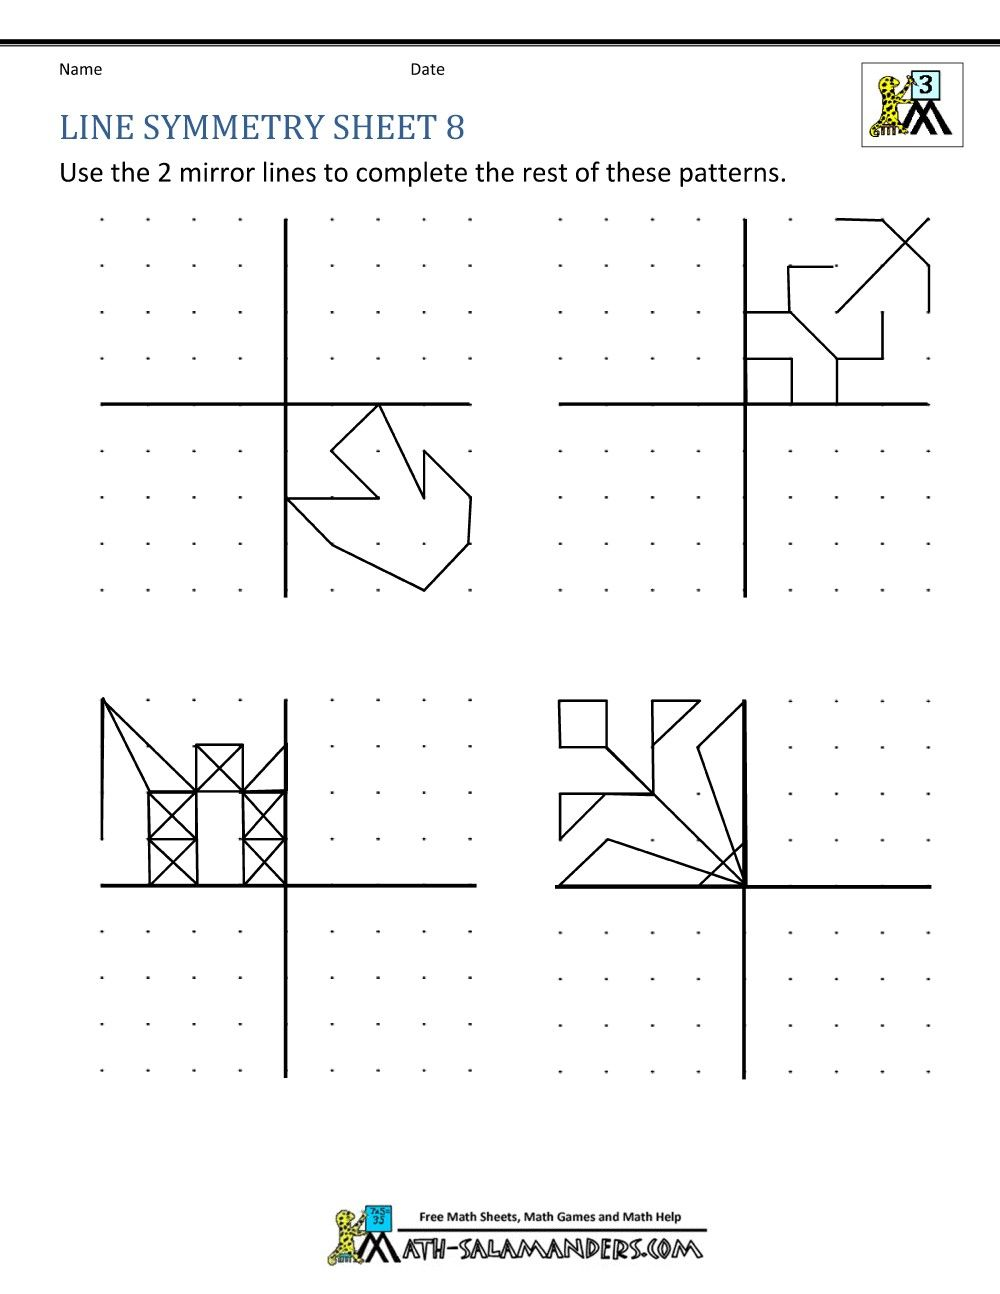 4 Worksheet End Of Year Reflections Thank You Symmetry Worksheets Symmetry Worksheets Symmetry Math Symmetry [ 1294 x 1000 Pixel ]